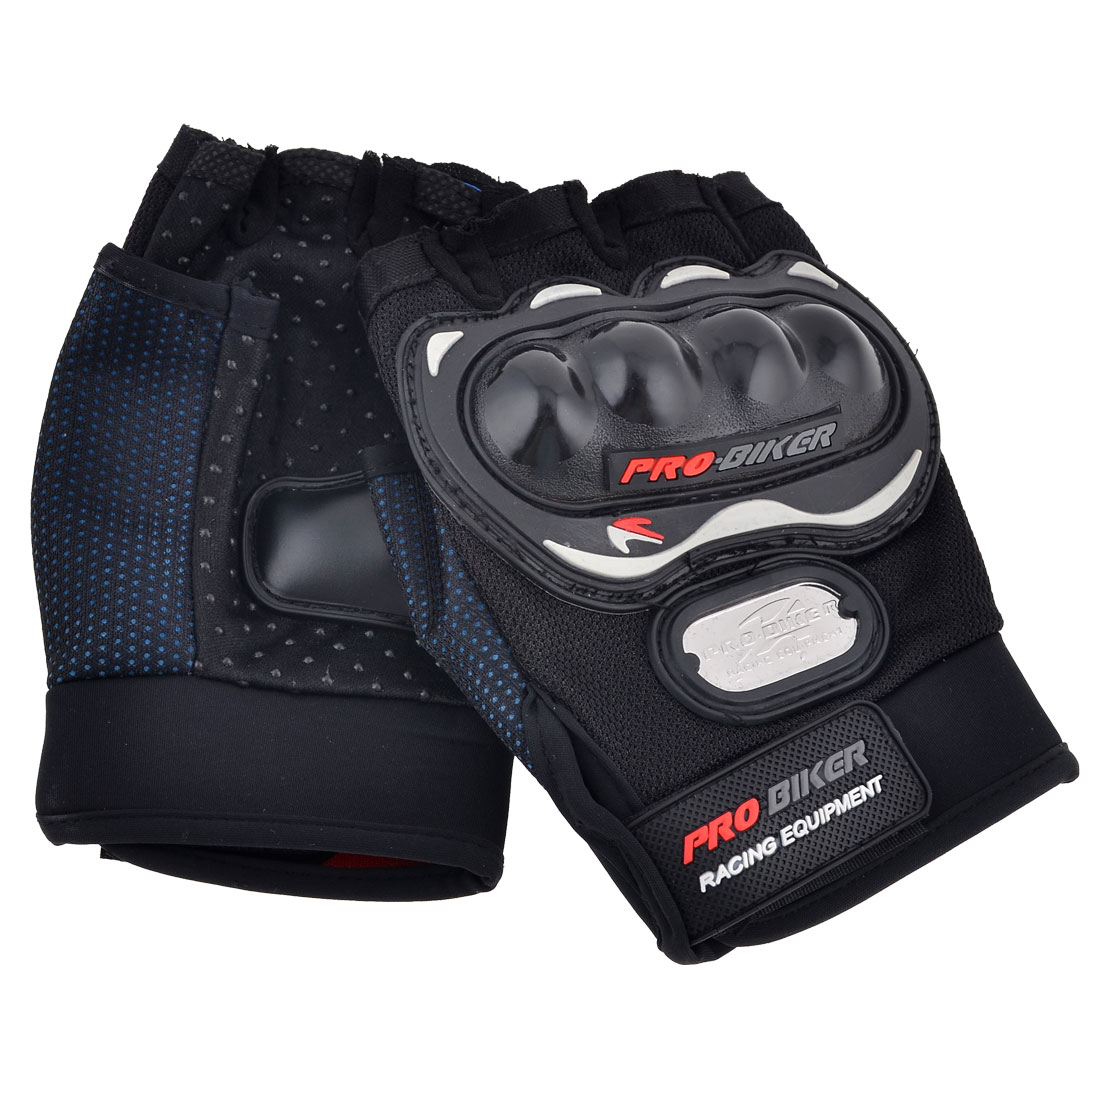 Adults Mountain Bike Driving Adjustable Wrist Half Finger Gloves Black Pair